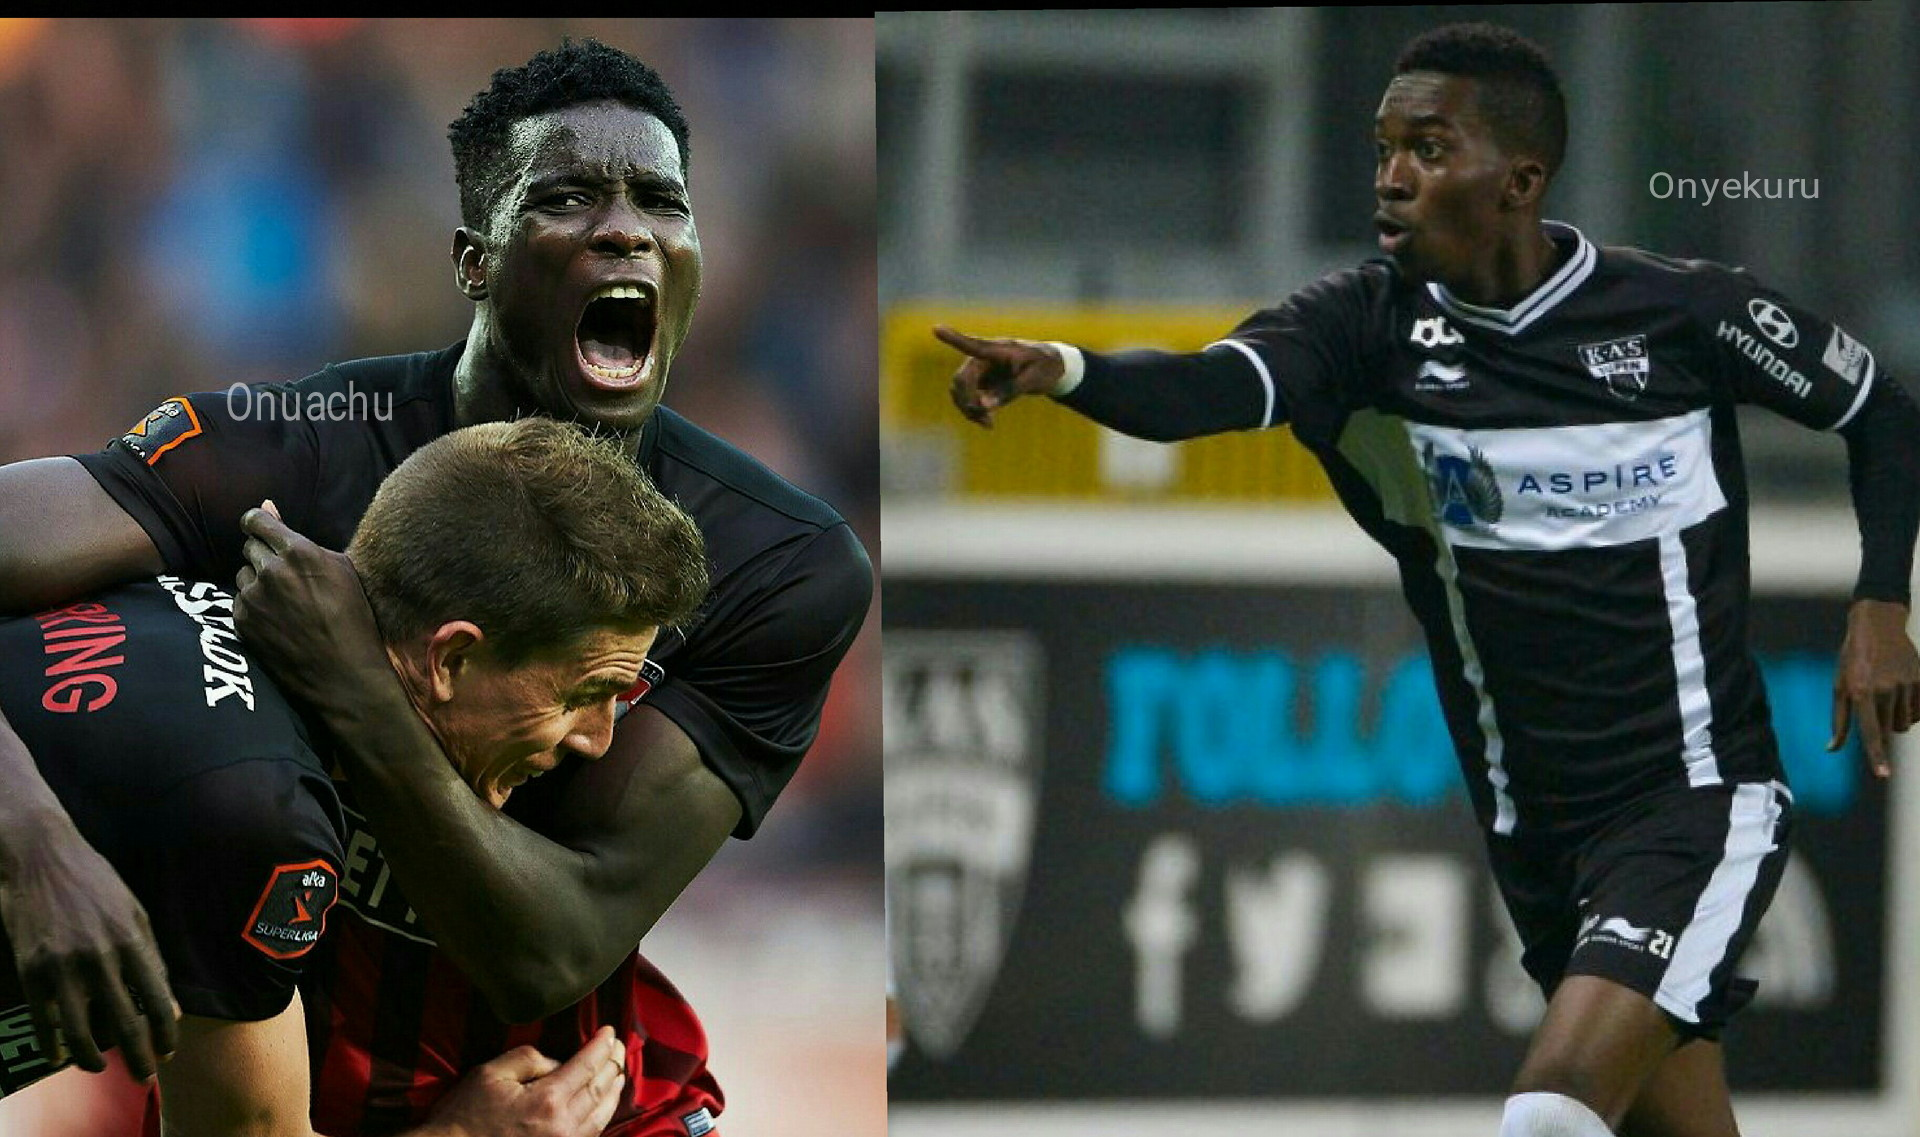 Onyekuru, Onuachu On Target In Belgium, Denmark As Eupen, Midtjylland Win